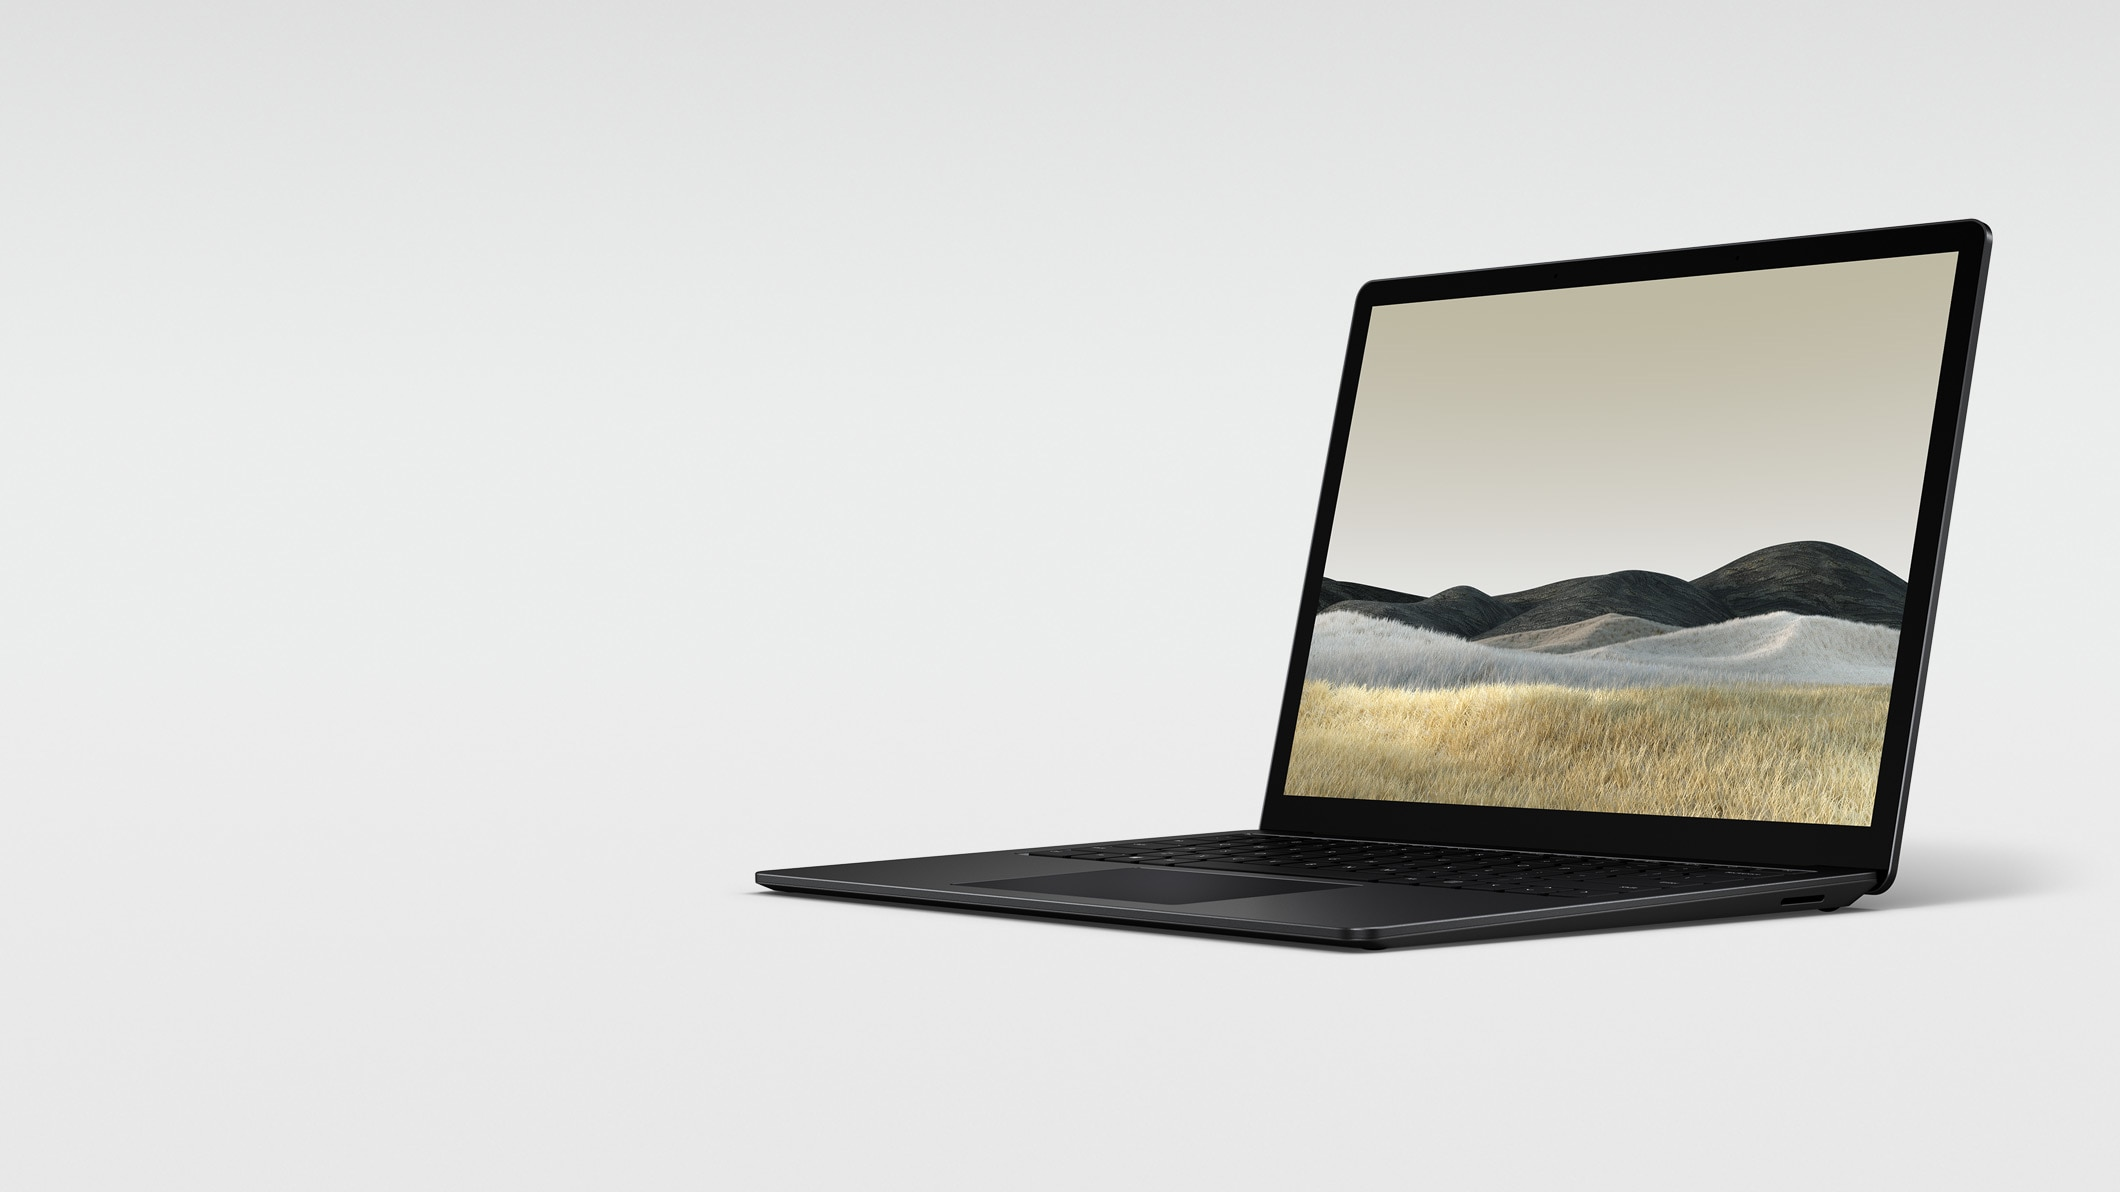 13,5-tums Surface Laptop 3 i matt svart